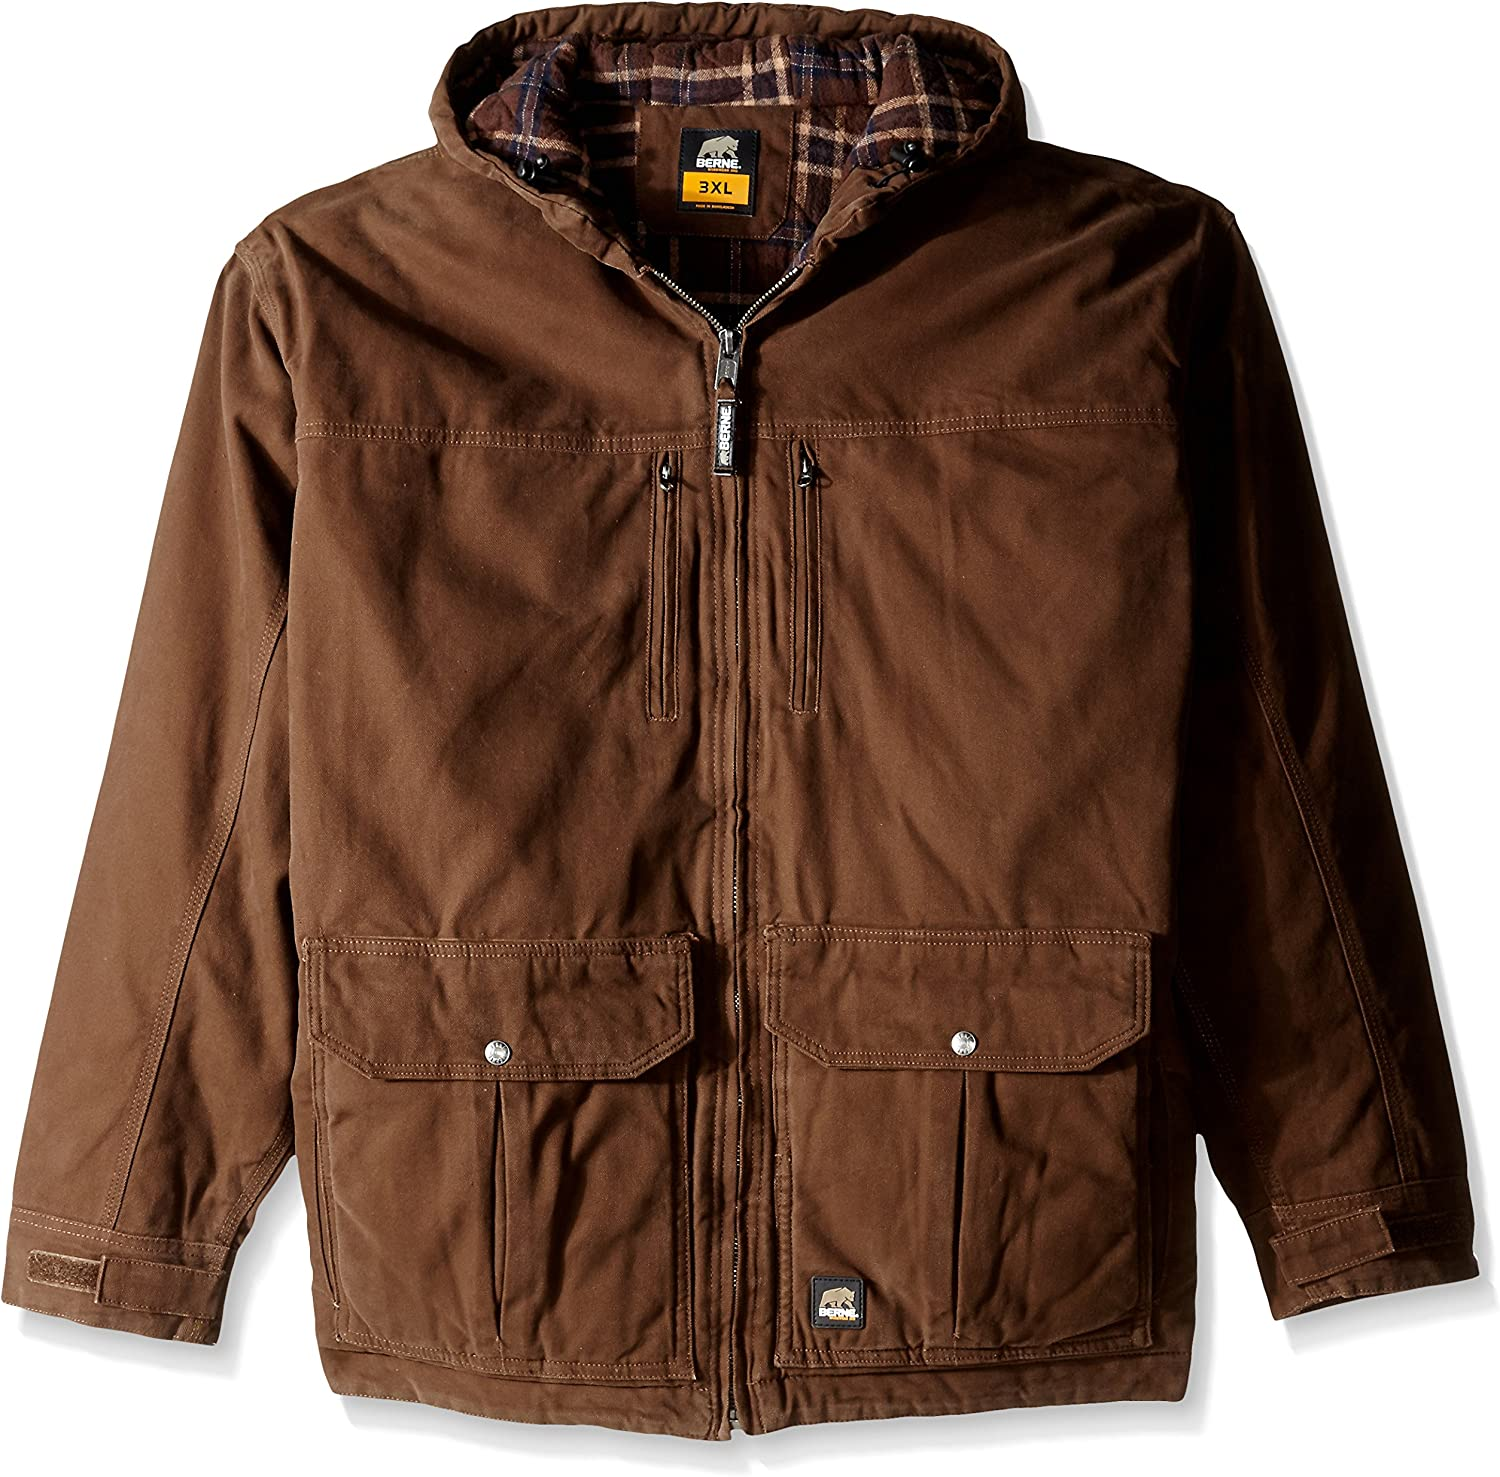 Berne Echo One One Concealed Carry Coat